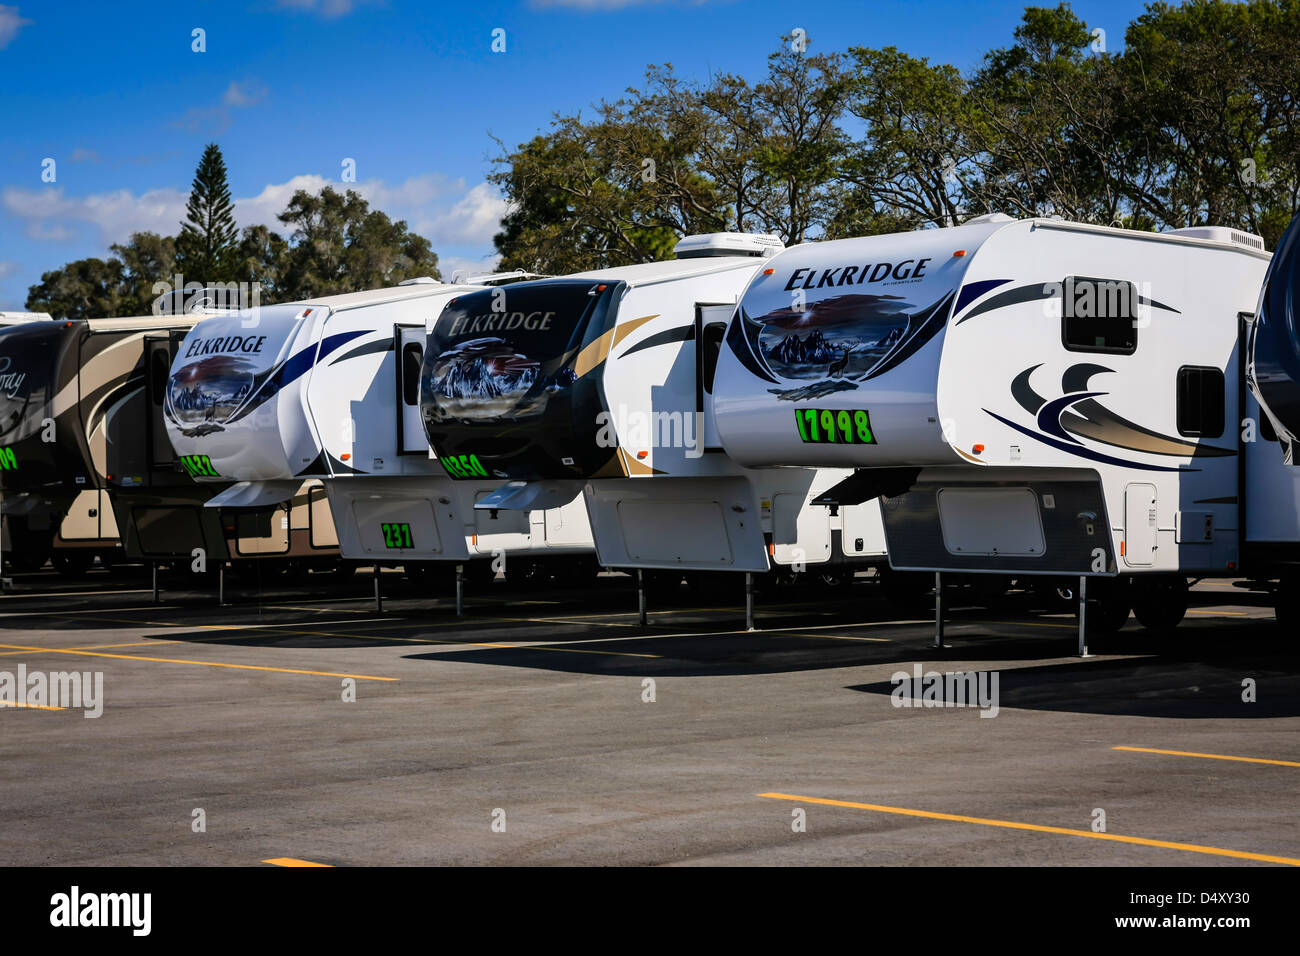 Fifth-wheel trailers on sale at an RV show in Sarasota Florida - Stock Image